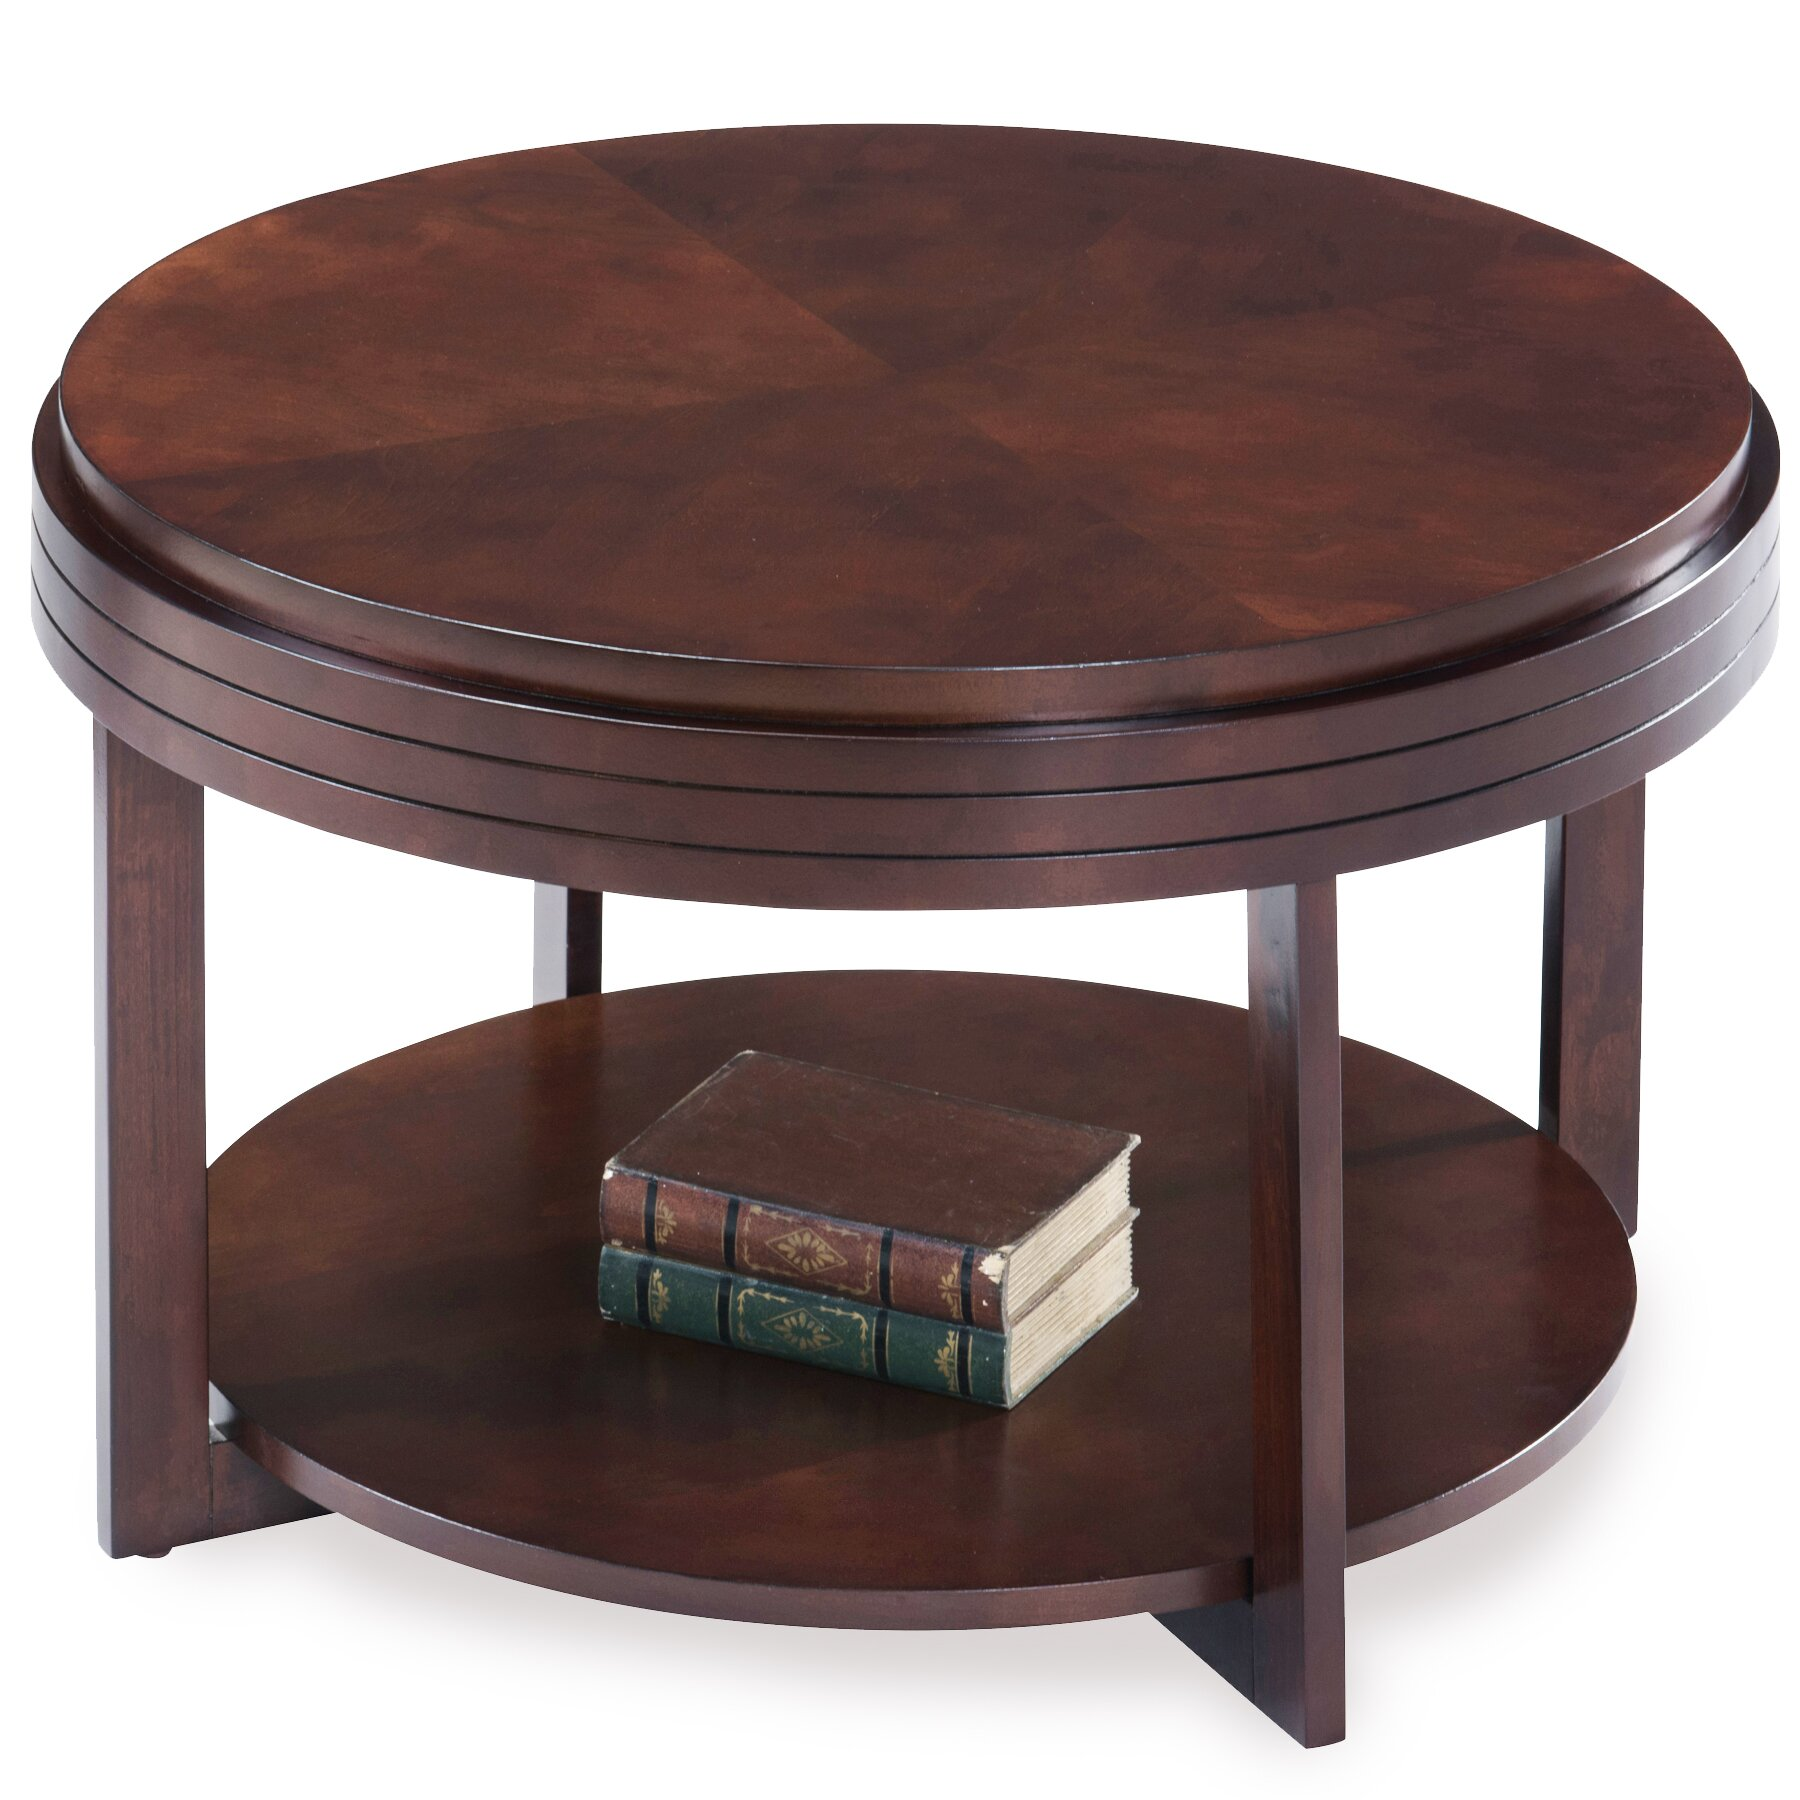 Charlton Home Apple Valley Coffee Table Amp Reviews Wayfair Apple